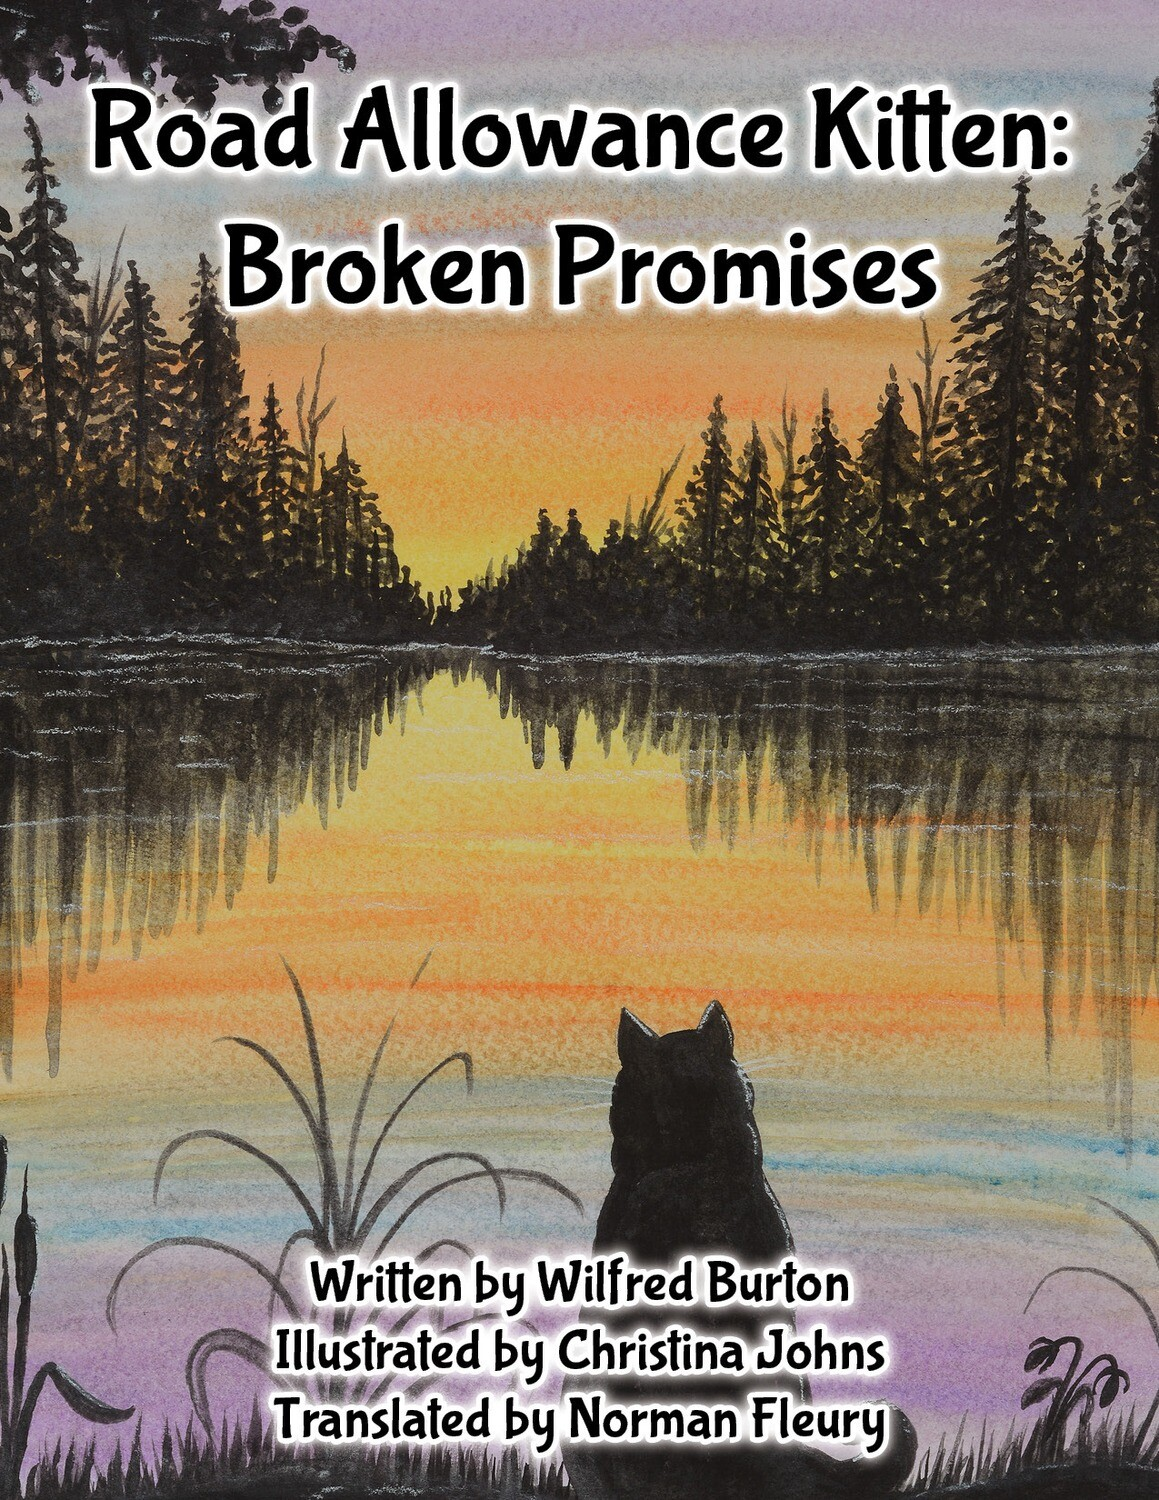 Road Allowance Kitten: Broken Promises